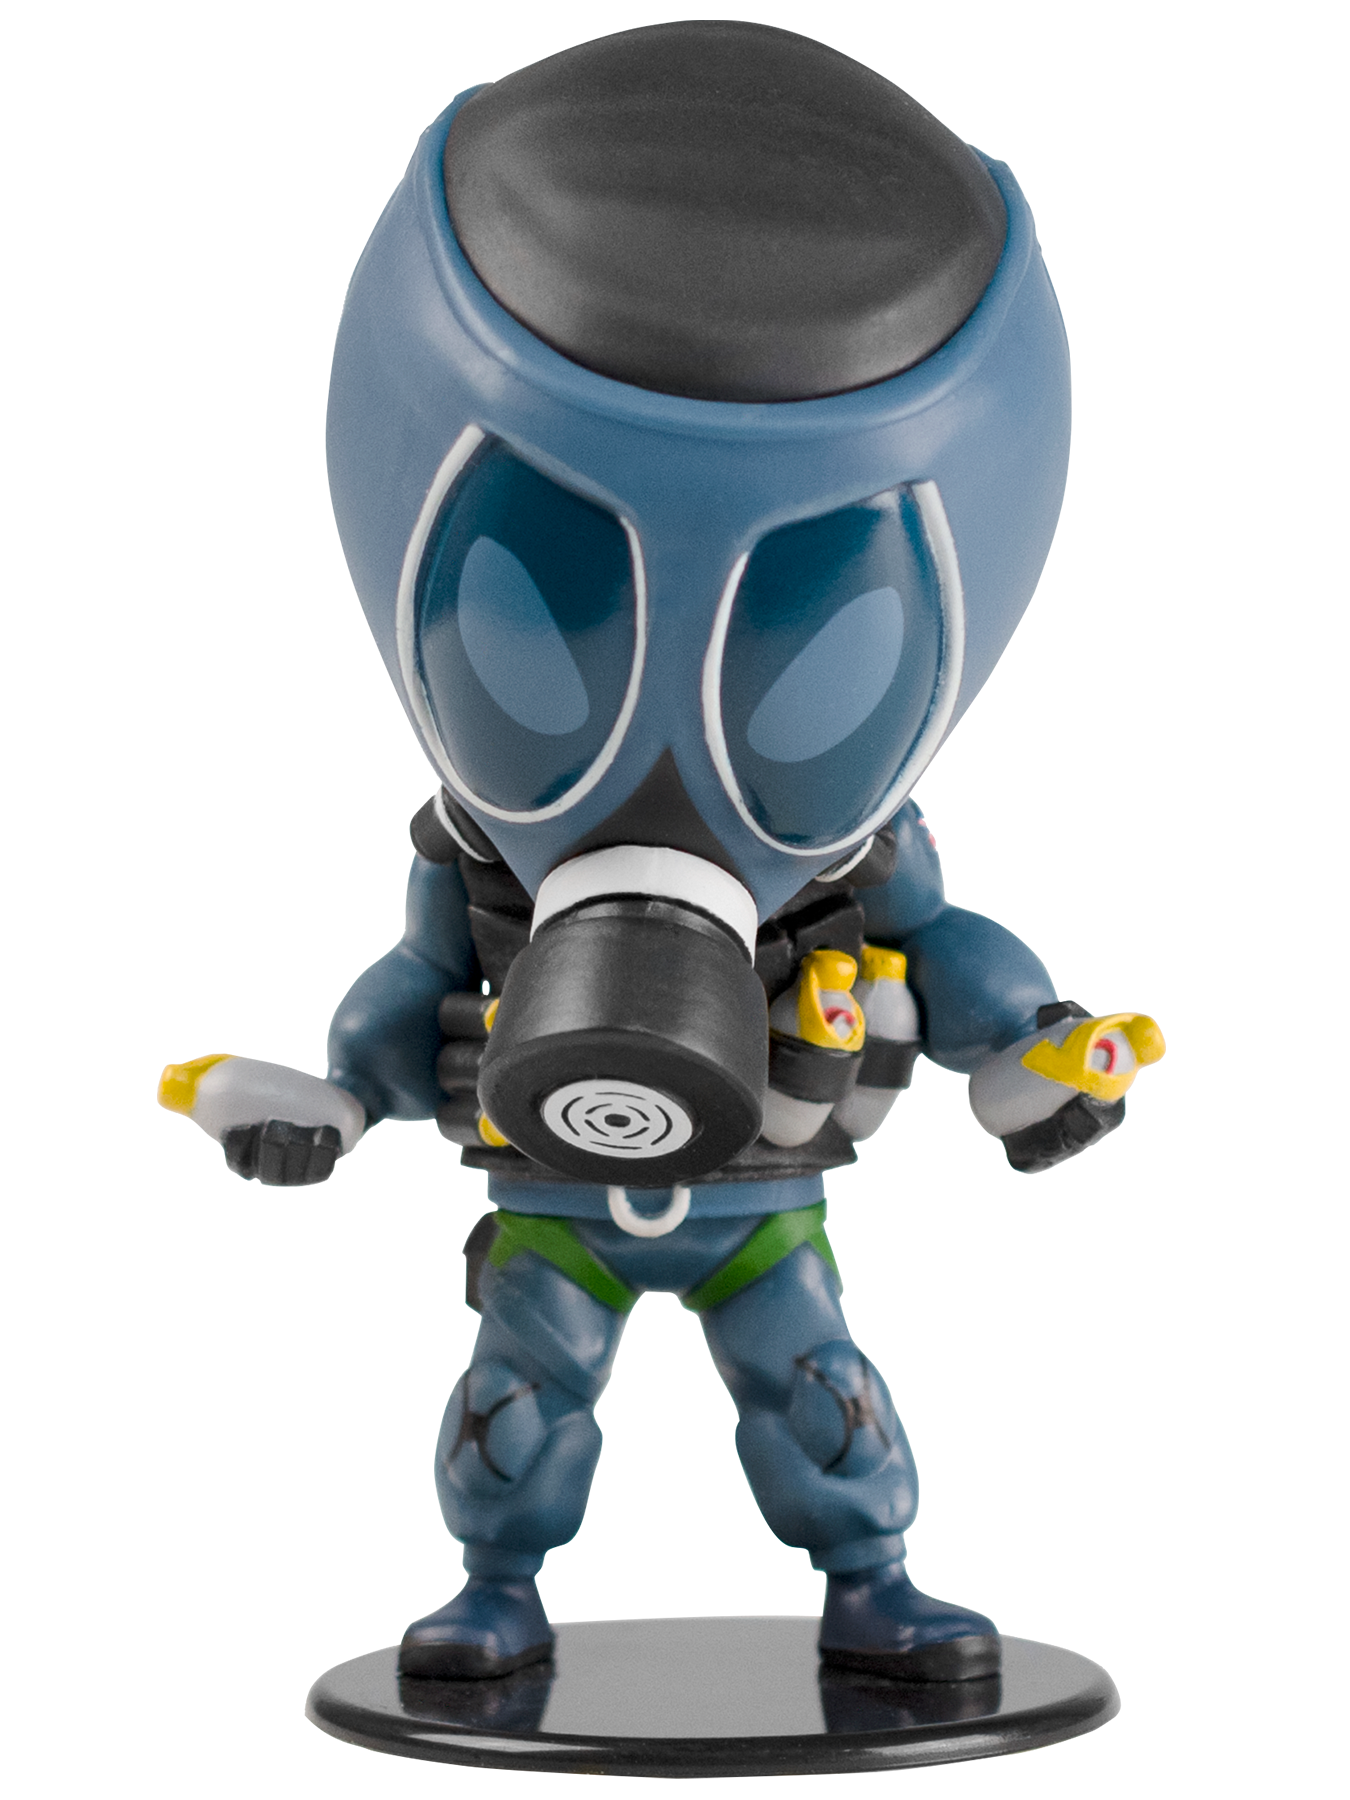 Smoke Figurine